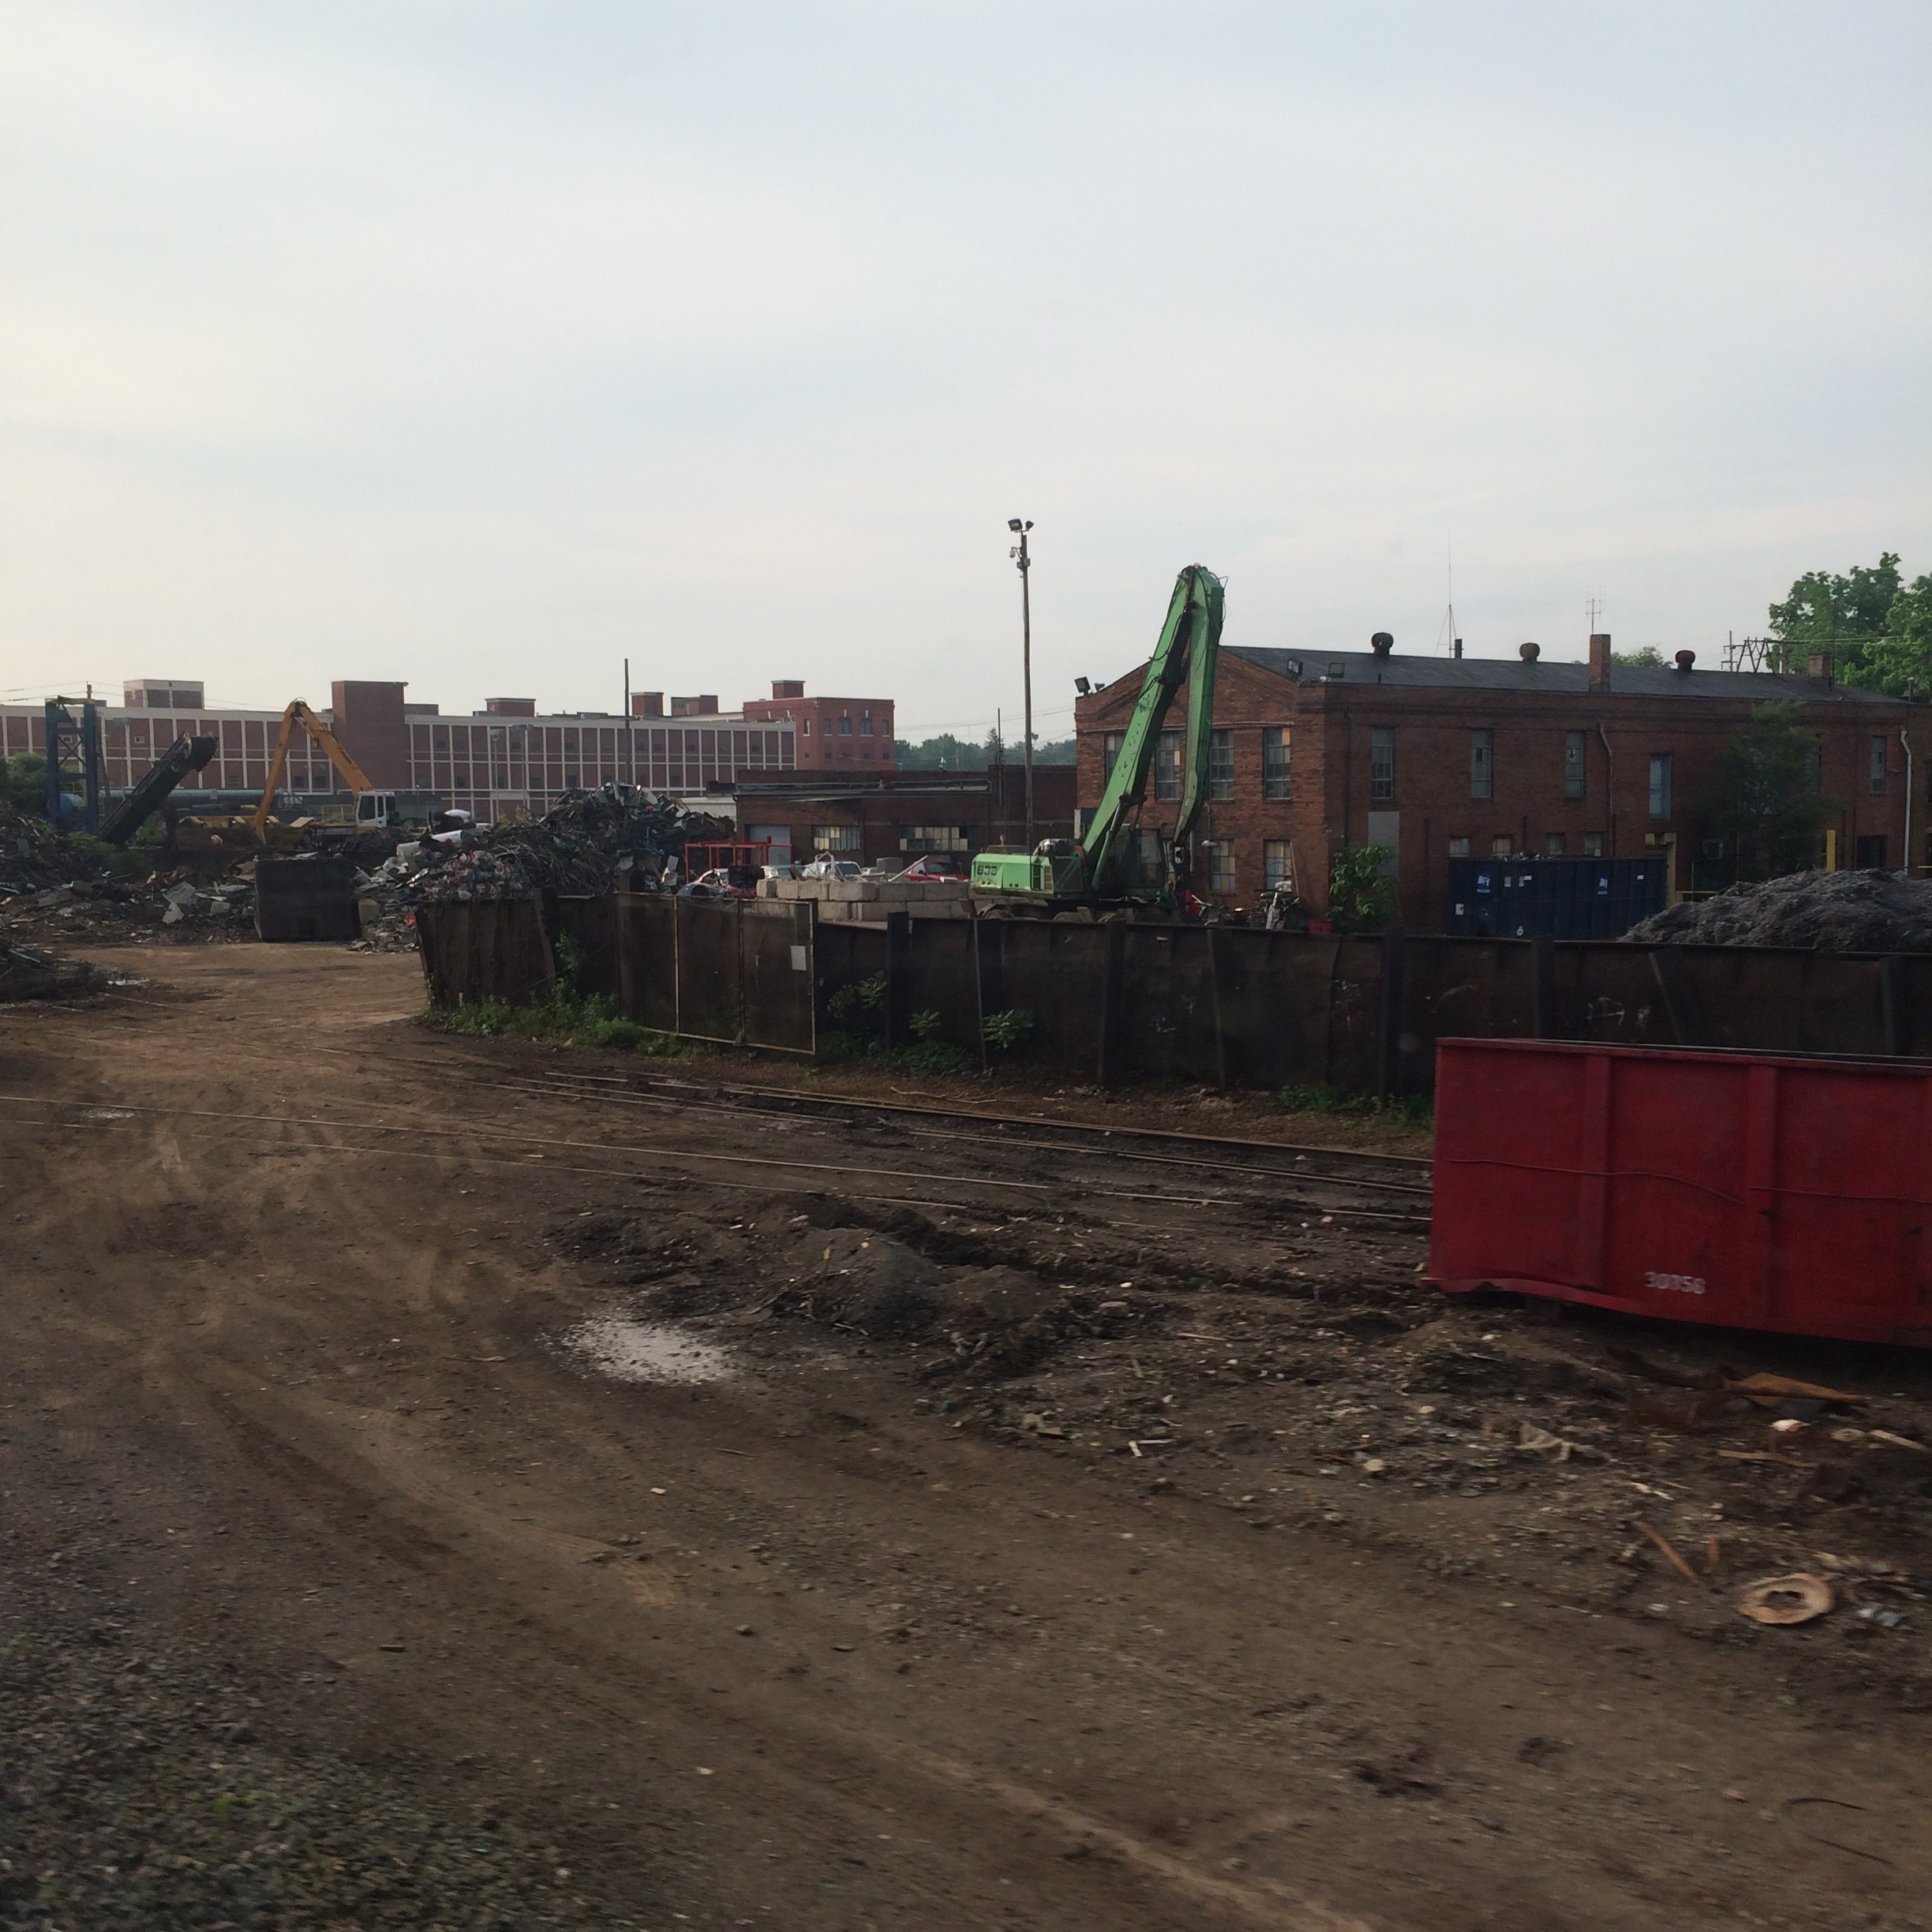 Elyria, OH....many cities along here are falling apart with the loss of industry